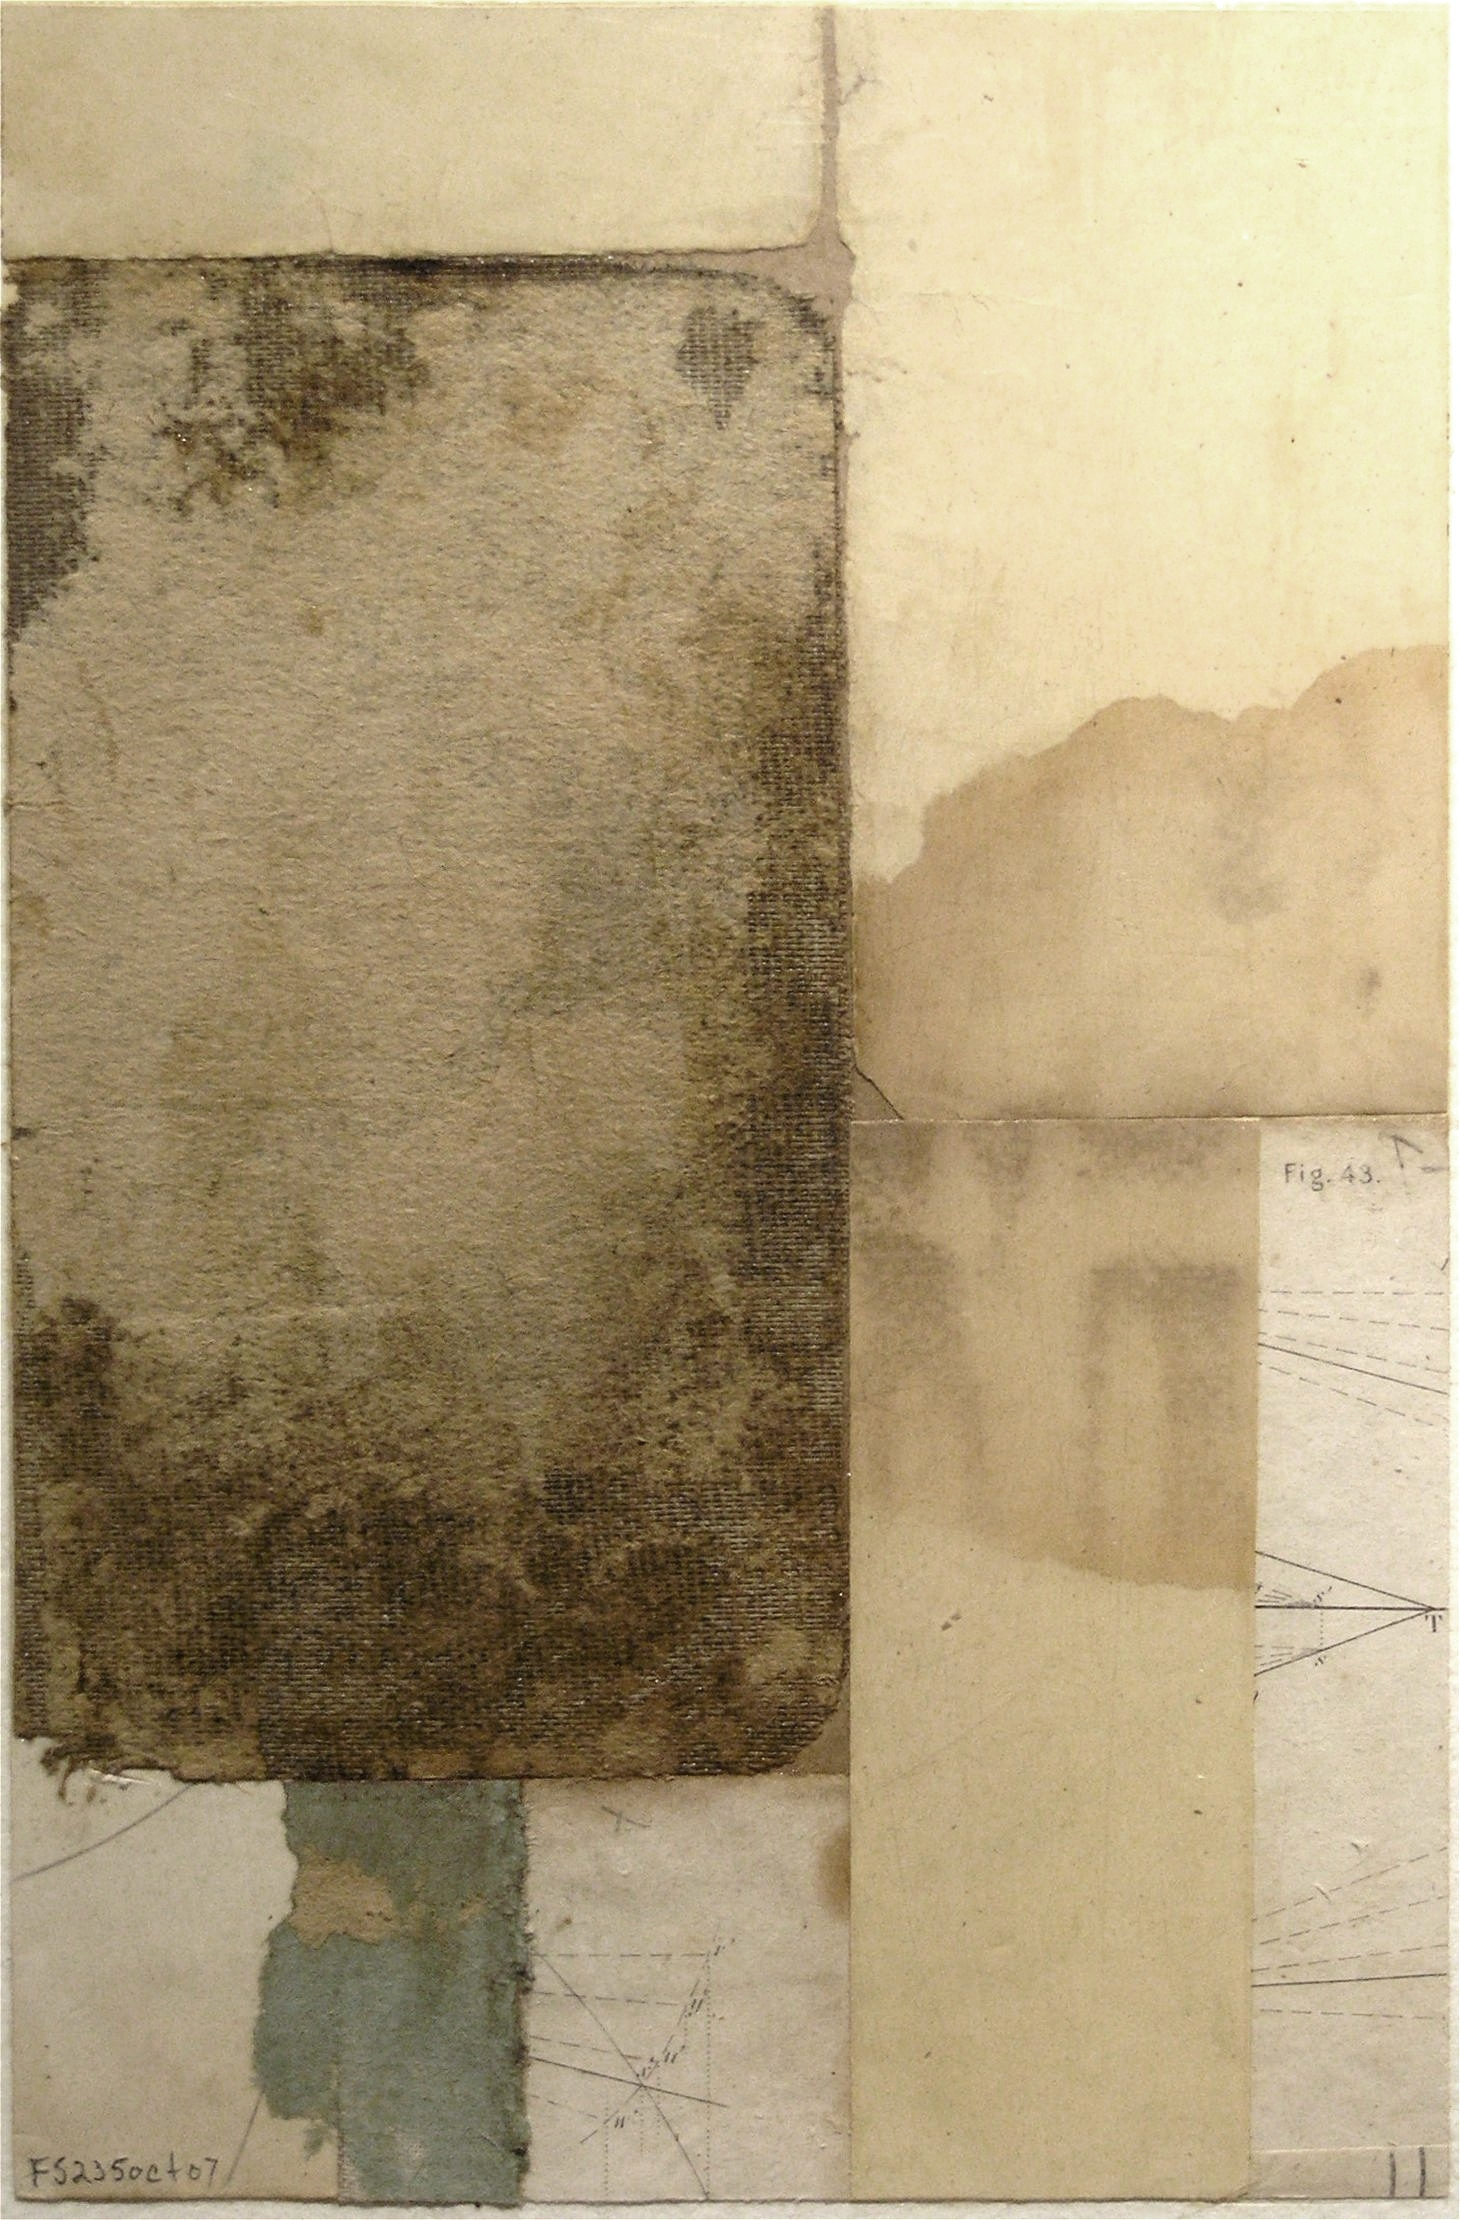 Fusion Series #2350 - 2007 - collage with found paper - 6x4 inches mounted on watercolor paper